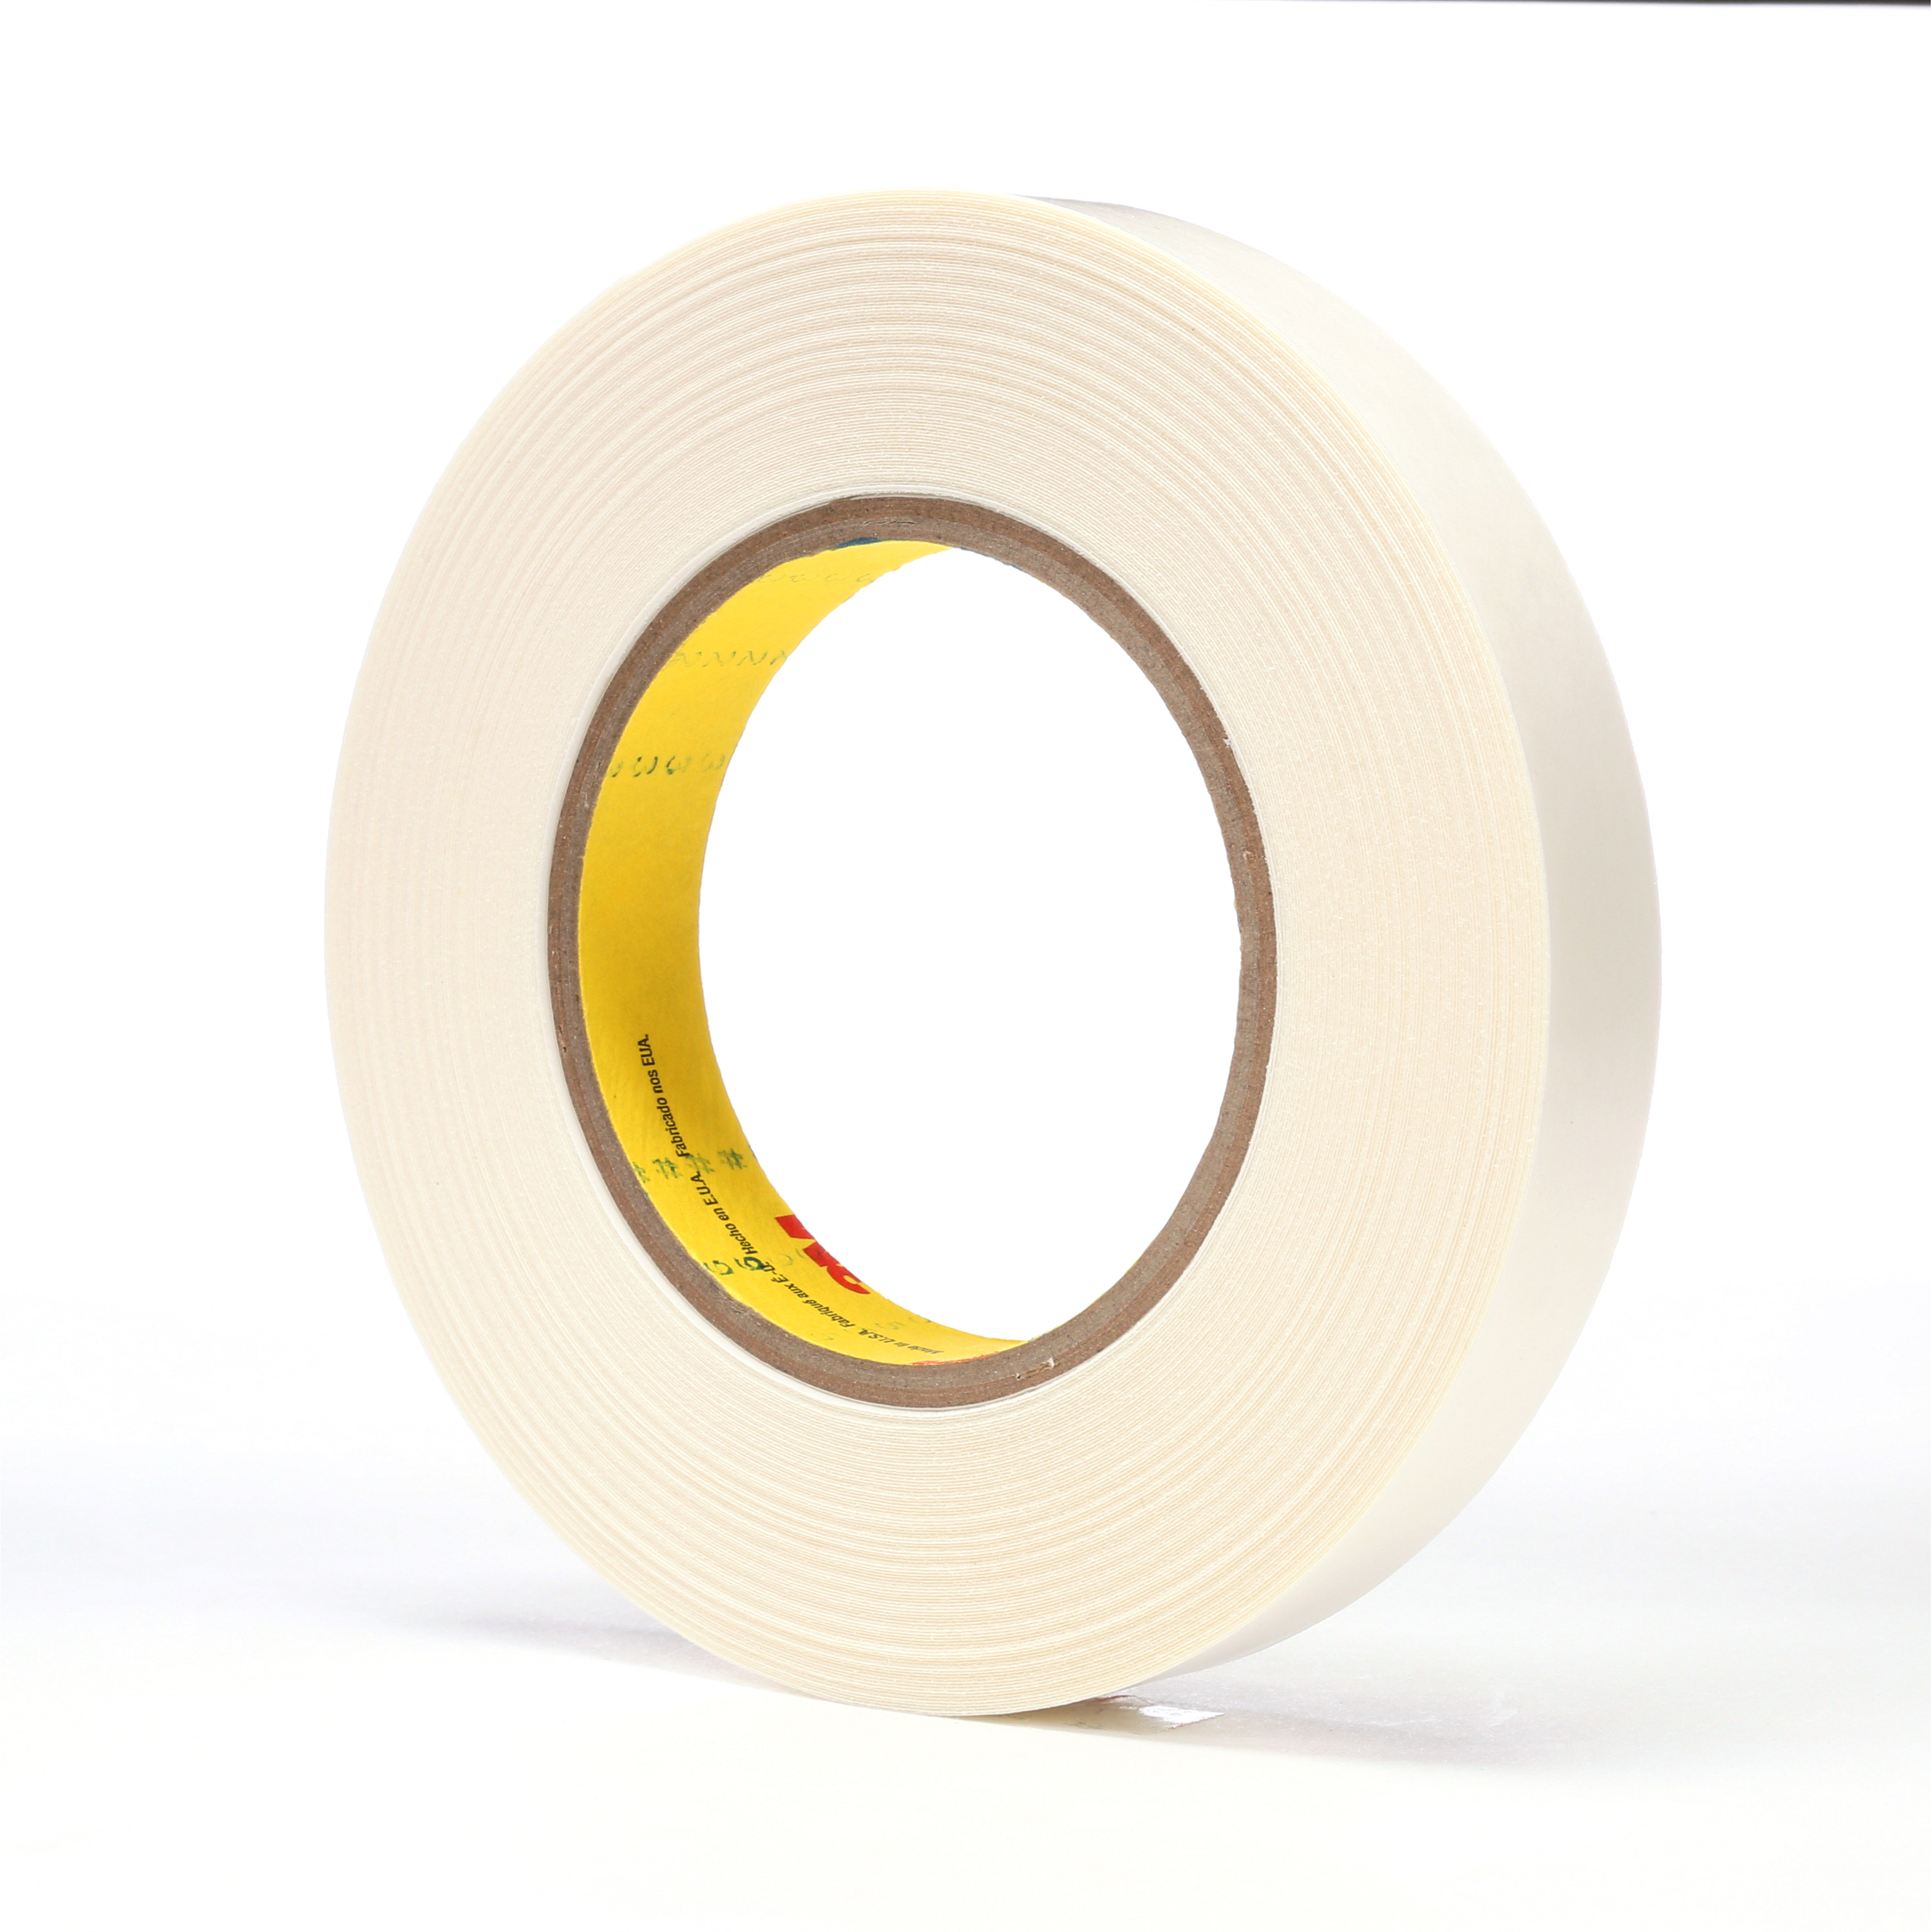 3M™ Double Coated Tape 9579, White, 3/4 in x 36 yd, 9 mil, 48 rolls per case